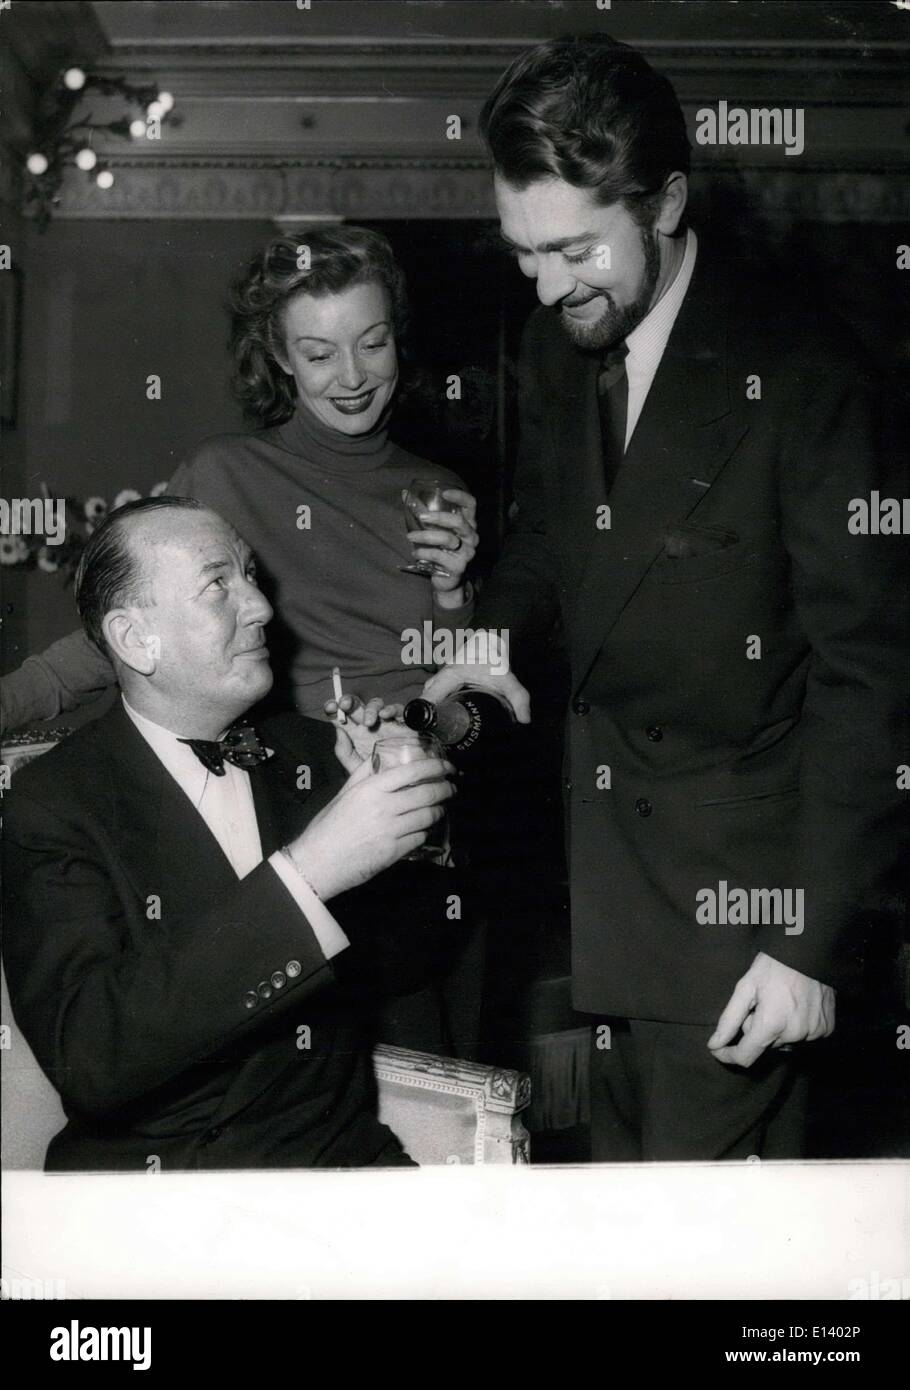 Mar. 31, 2012 - Noel Coward the famous English author and playwright (seated), has some champagne which the French actor Jean Claude Pascal is smilingly pouring into his glass. The young stage actress Gisele Preville seen in the centre. Picture taken at Sarah Bernhardt Theatre where Noel Coward attended Edwidge Feulillere's farewell performance in Duma's famous play ''La Dame Aux Camelias''. Jean Claude Pascal plays the role of Armand Duval and has grown a beard for the occasion. - Stock Image